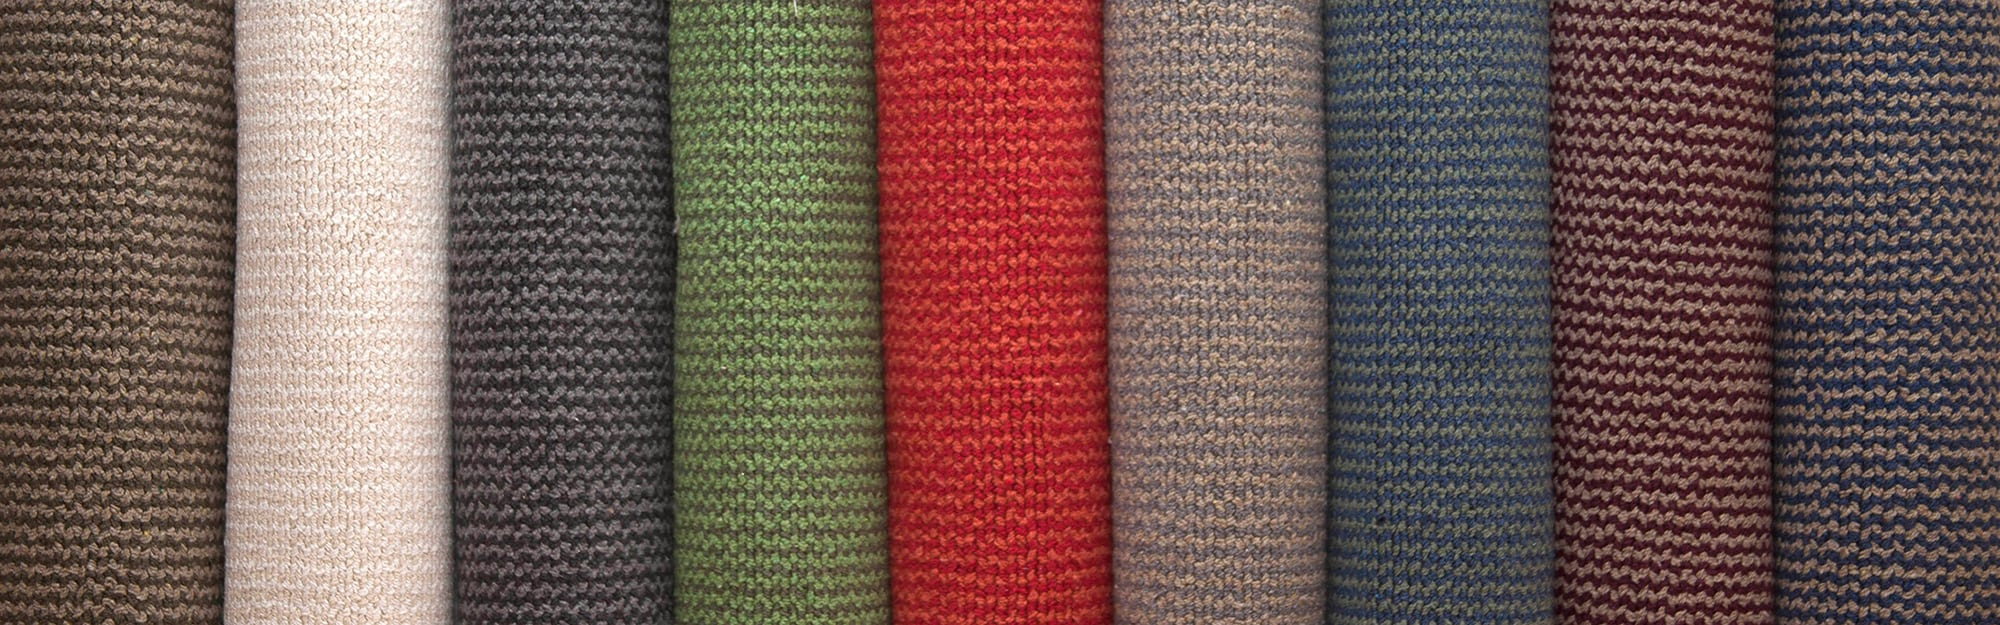 Speckled Solids Roll